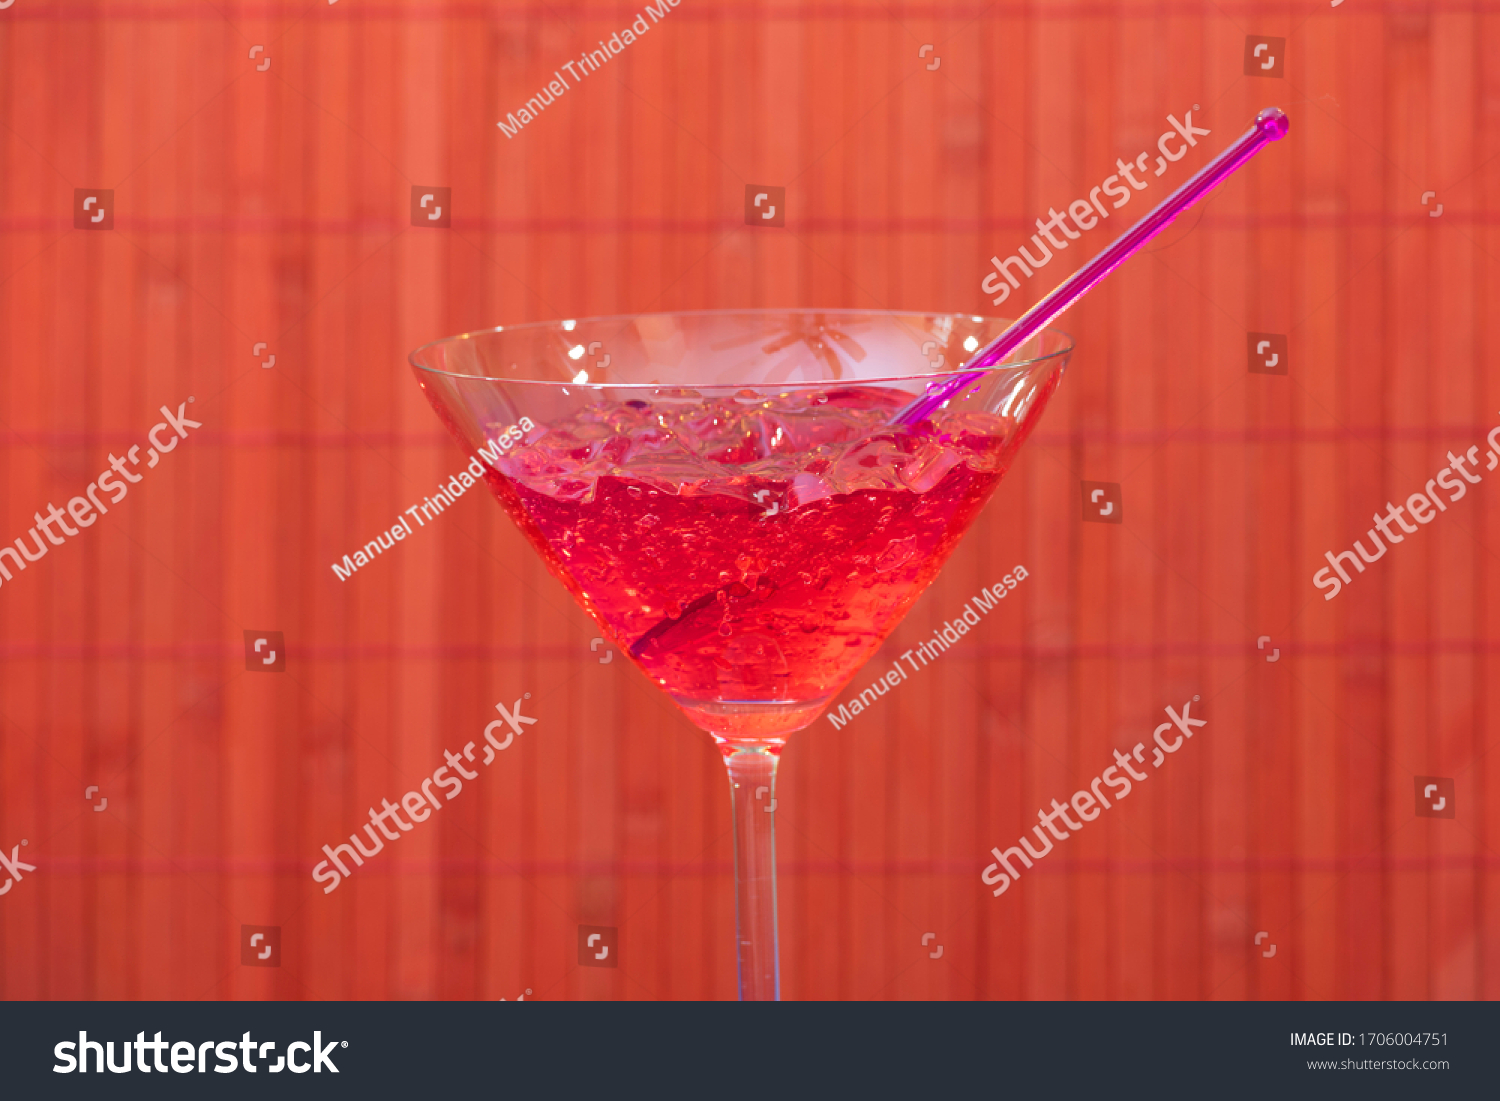 stock-photo-a-glass-with-strawberry-jell